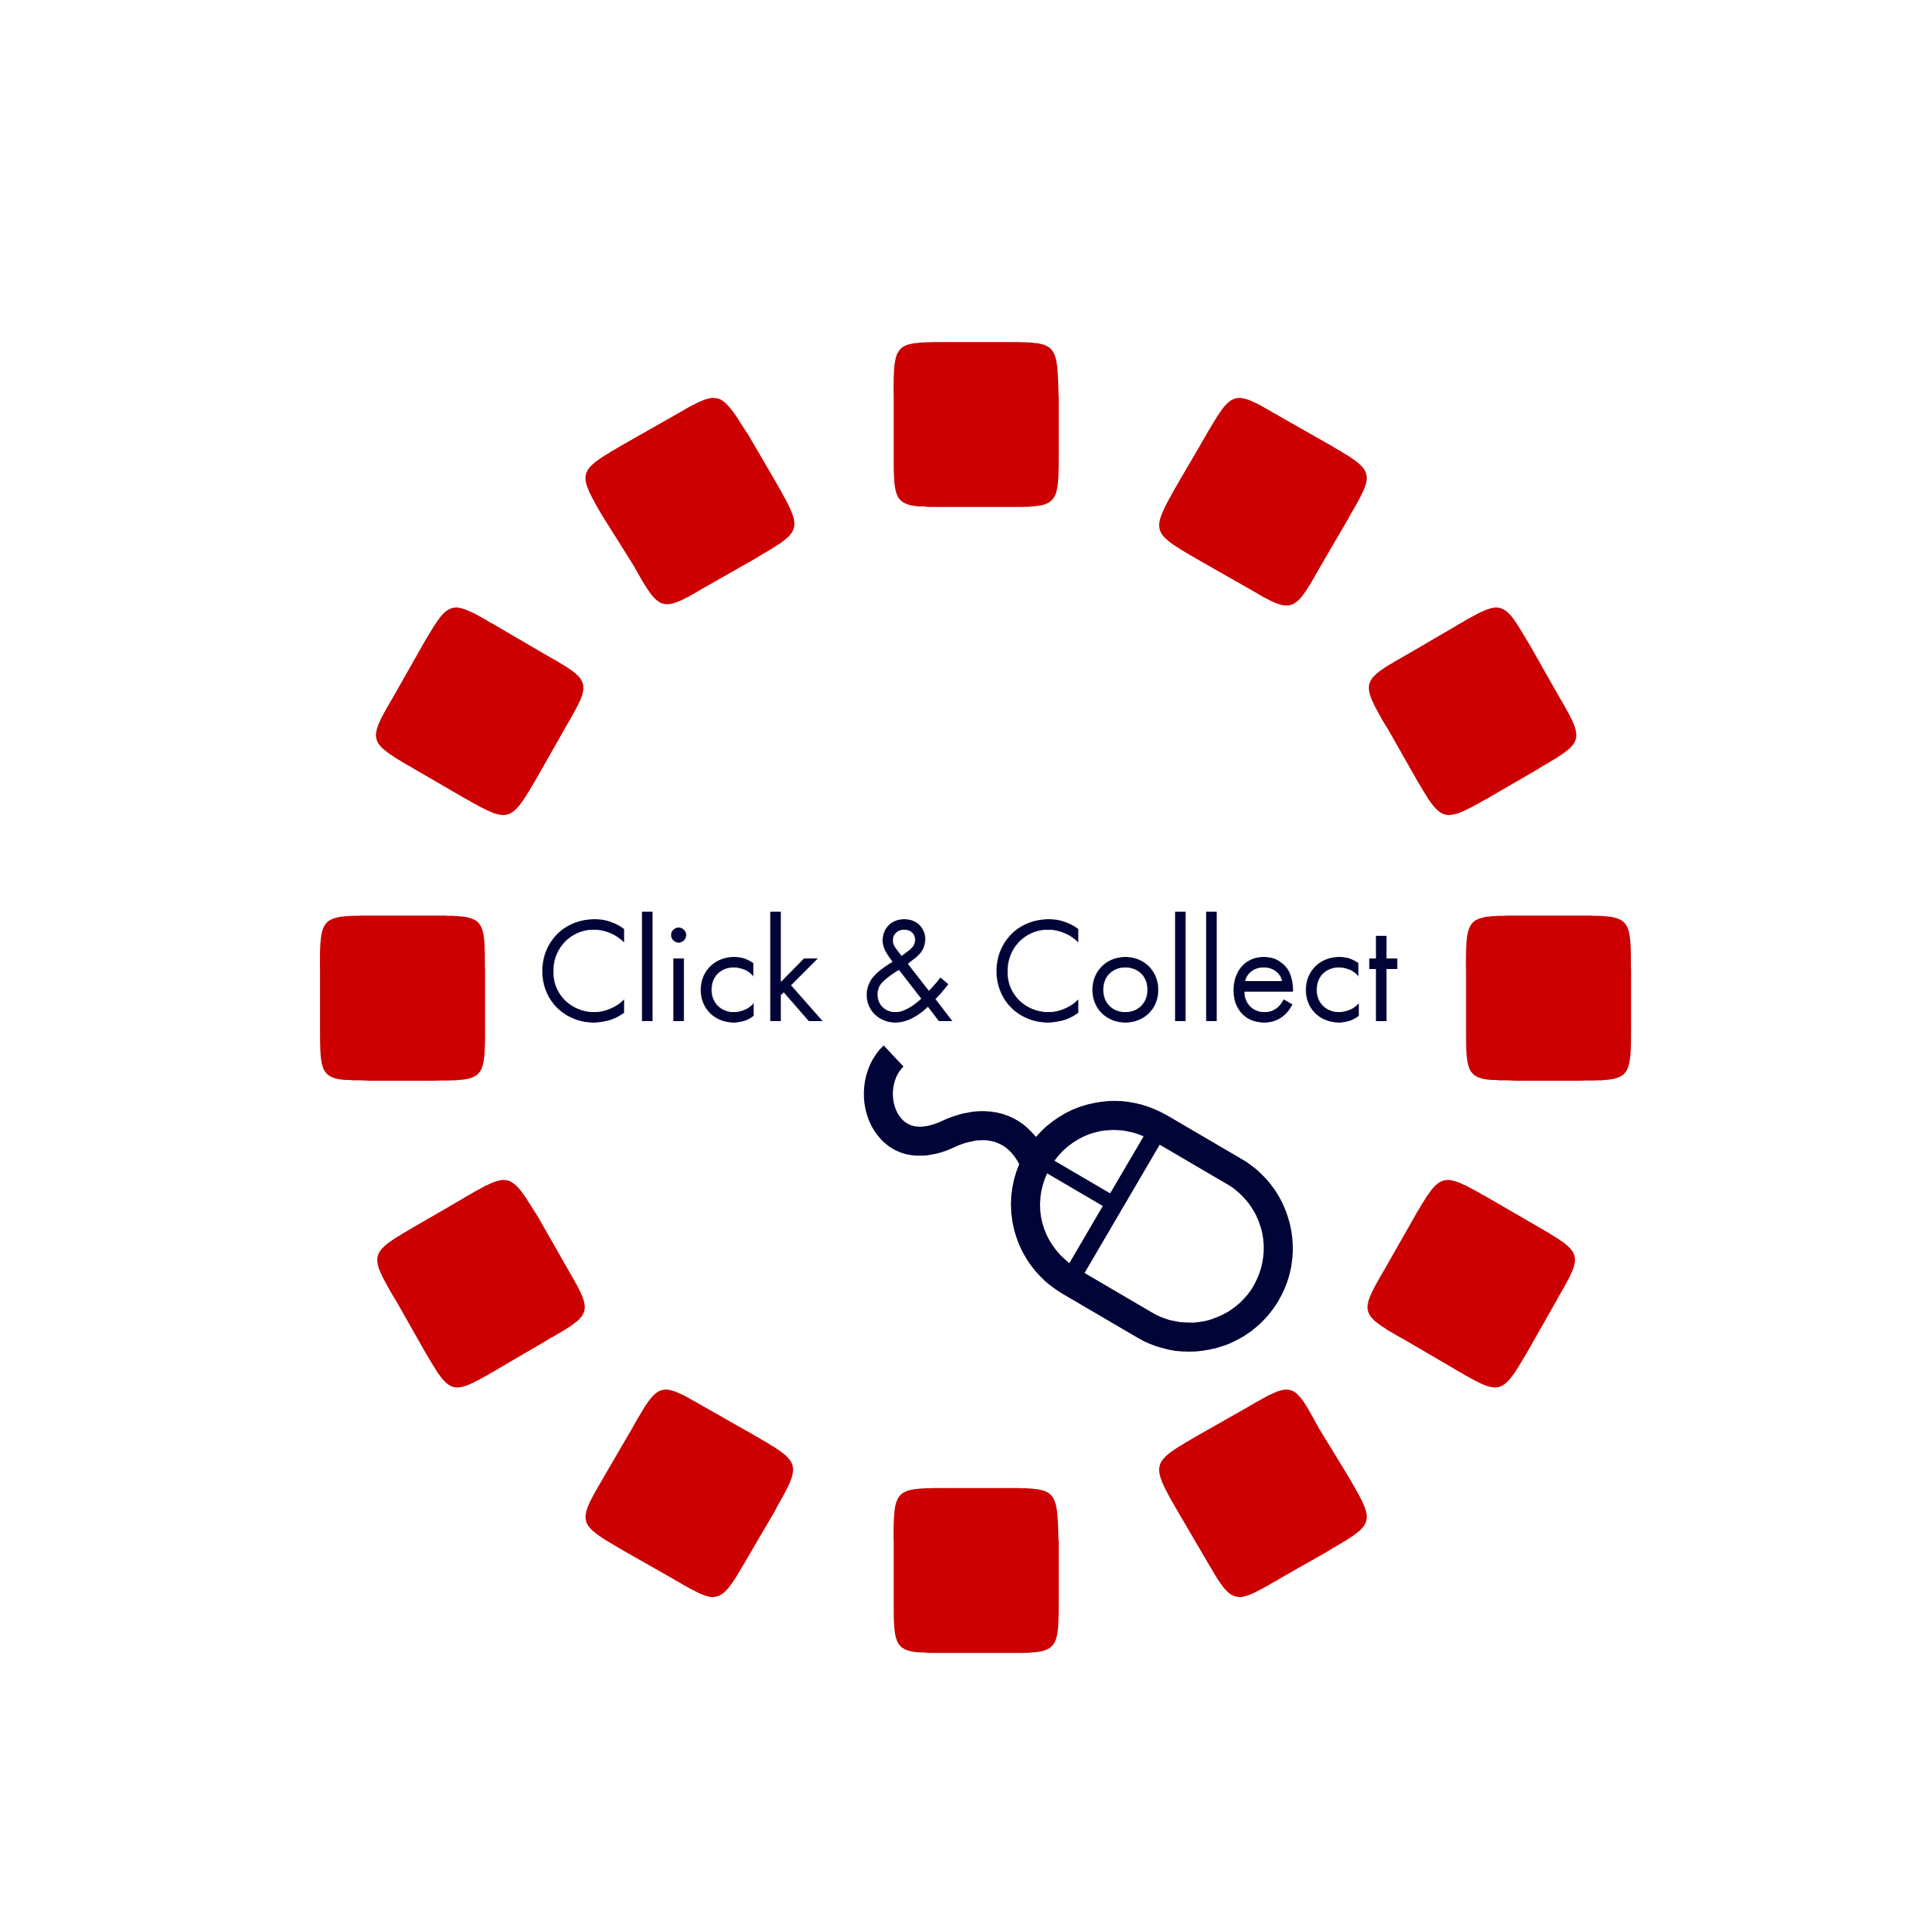 PEC Click & Collect